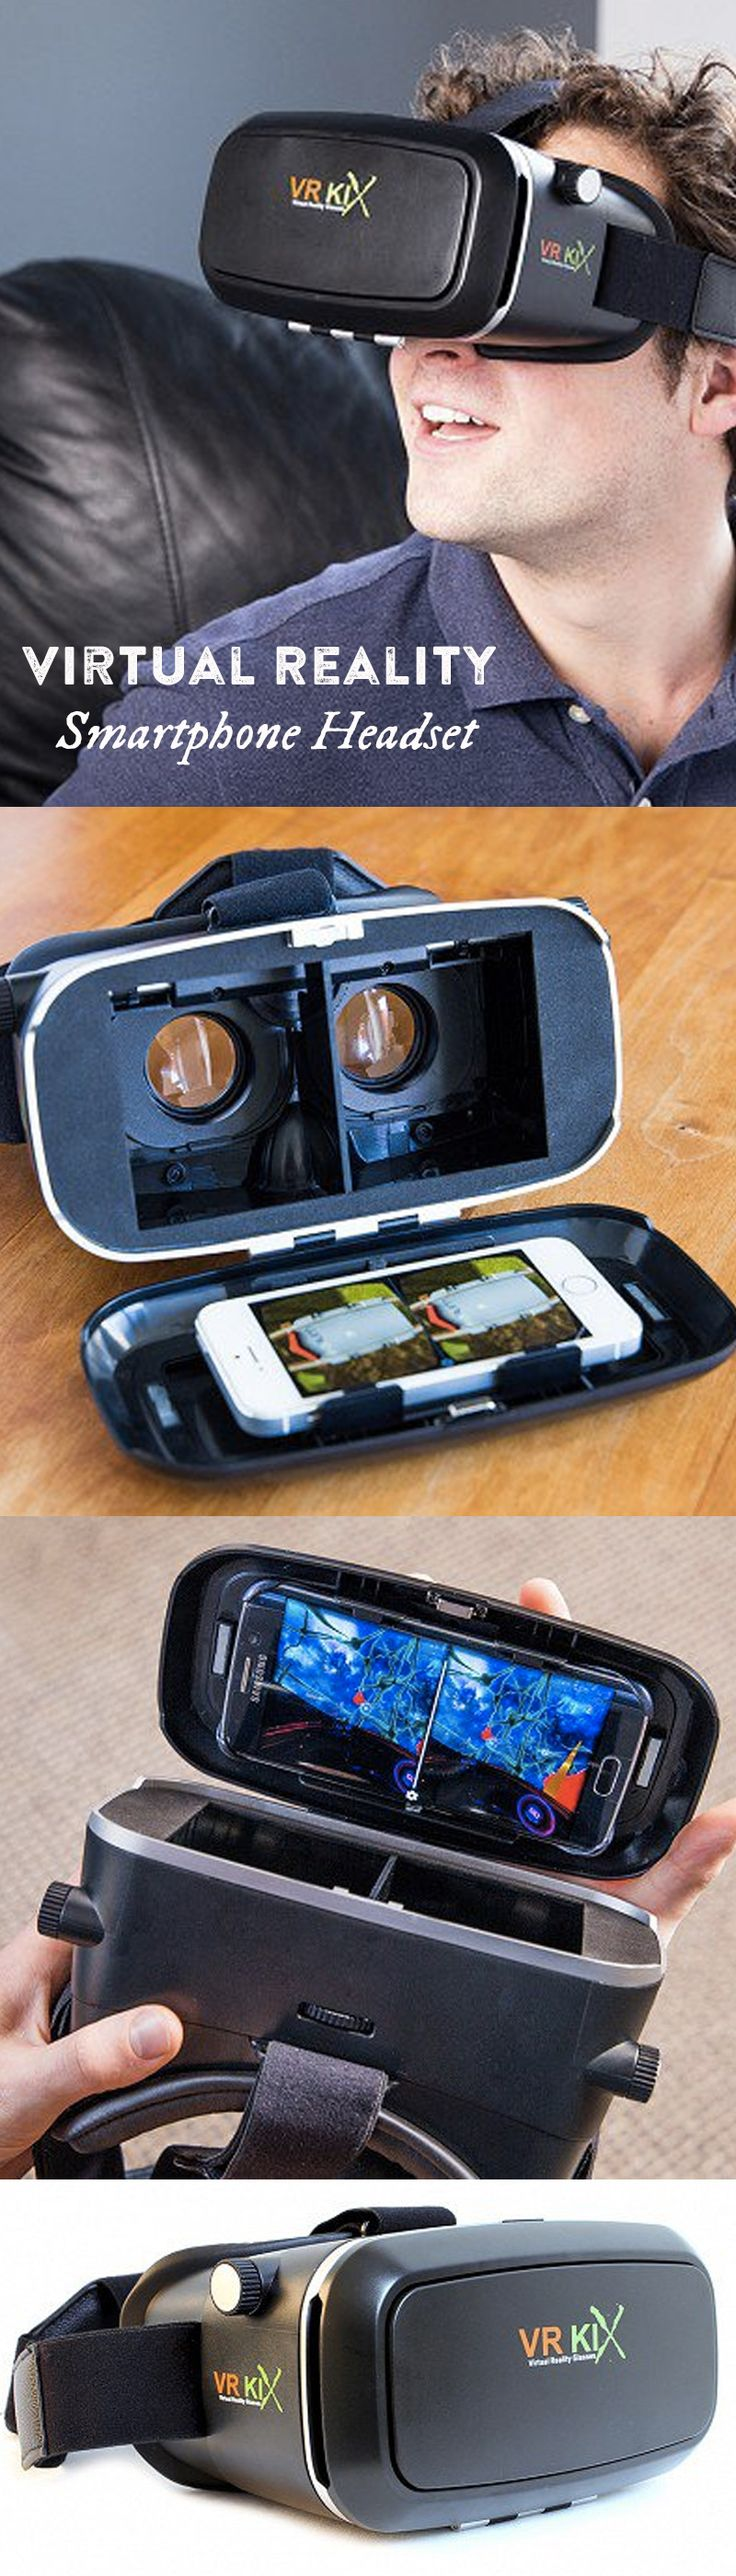 This virtual reality headset turns your smartphone into a virtual reality machine, making cutting edge technology affordable and accessible.